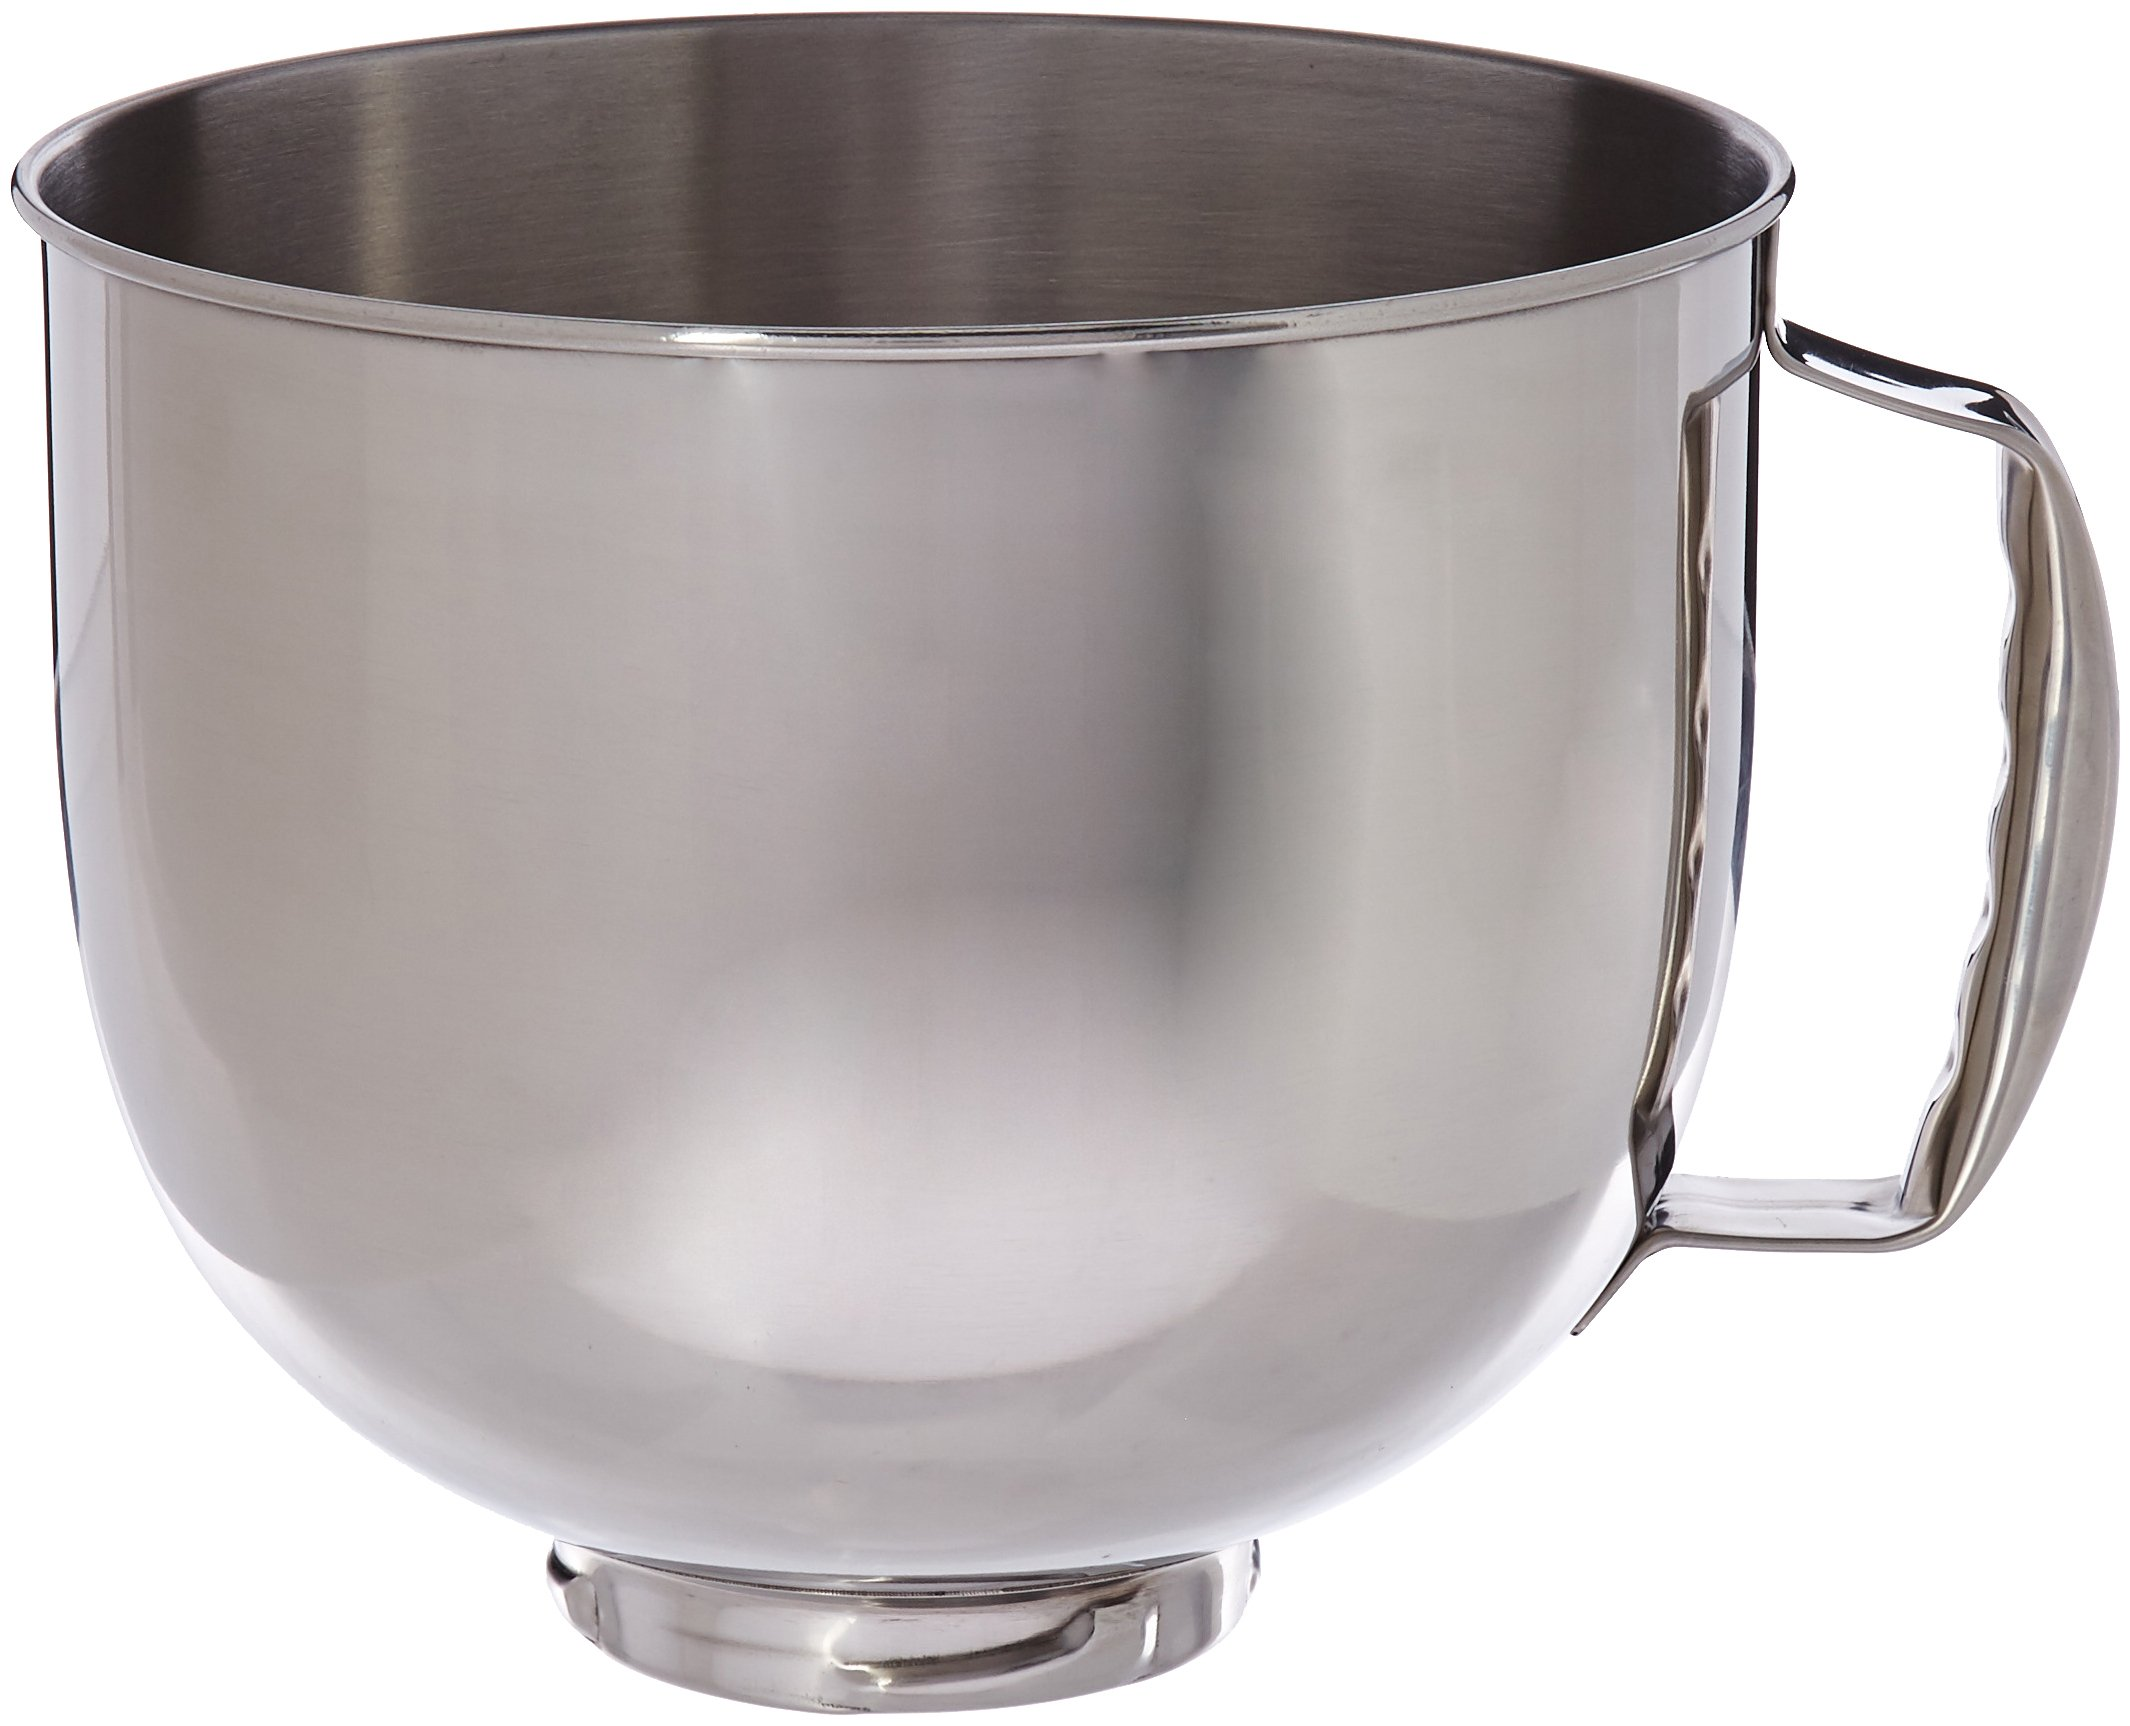 Cuisinart SM-50MB 5.5-Quart Mixing Bowl, Stainless Steel